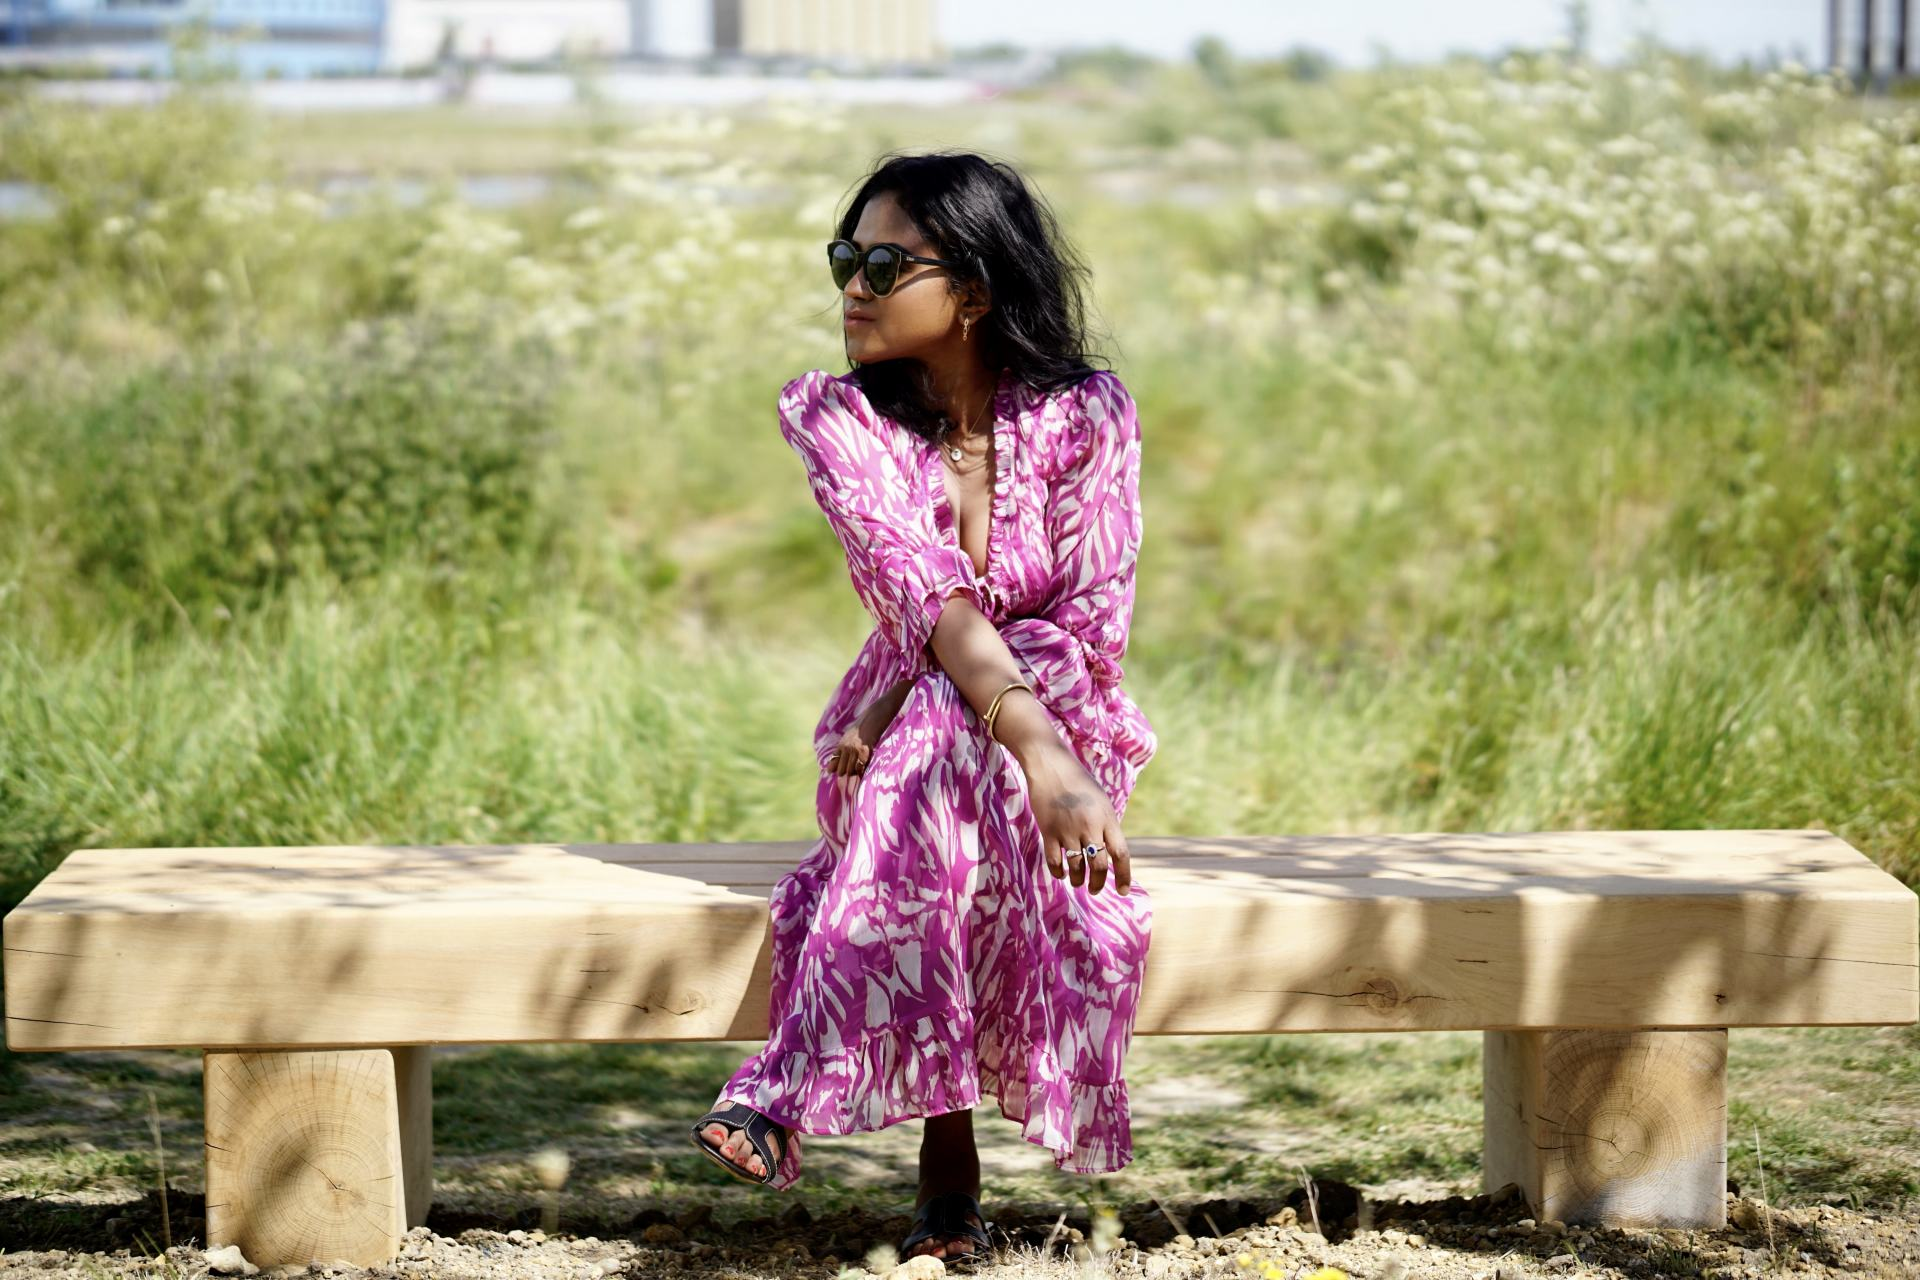 Sachini sitting on a bench in the nature wearing a white and pink dress